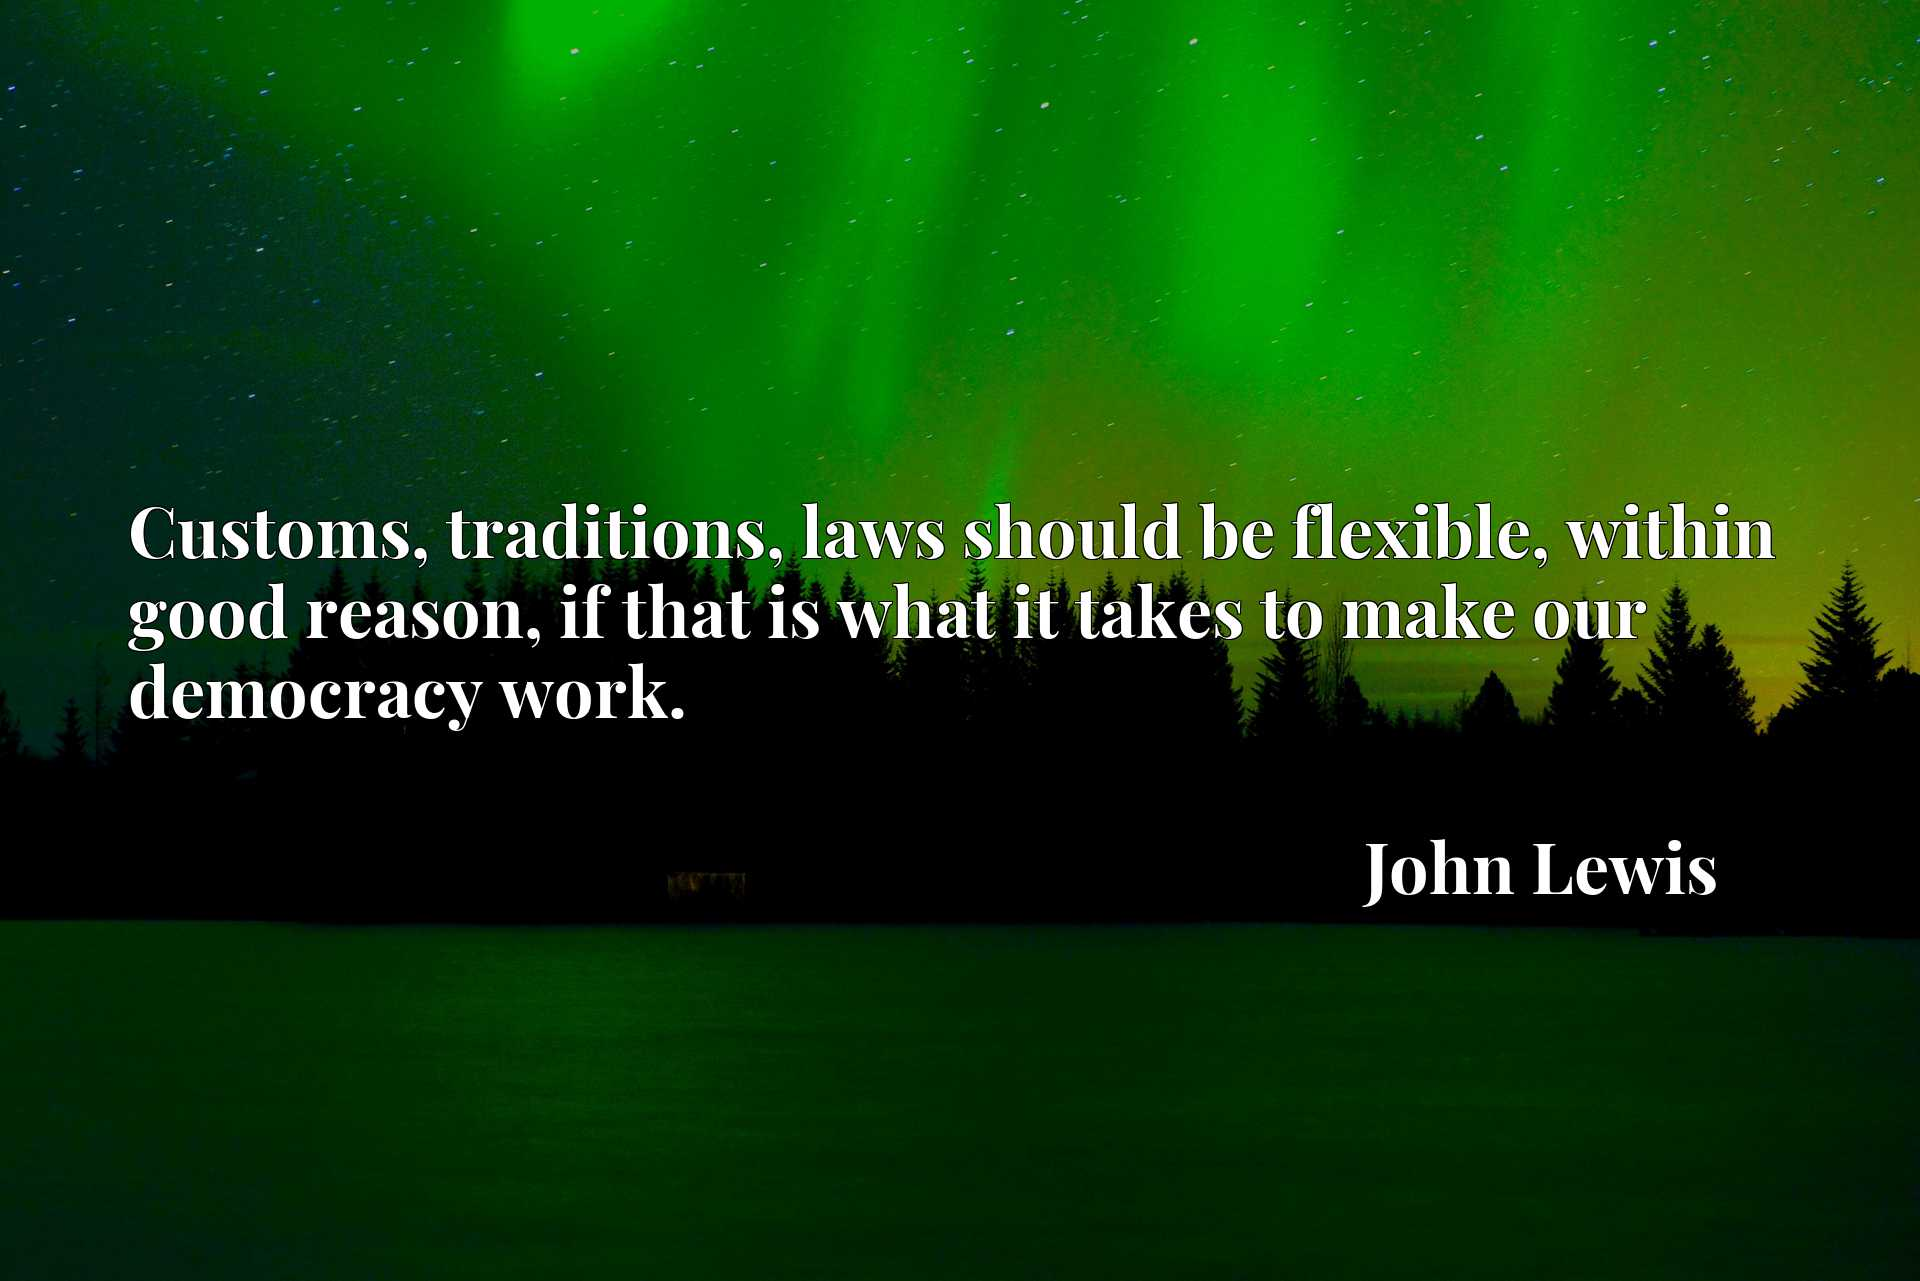 Customs, traditions, laws should be flexible, within good reason, if that is what it takes to make our democracy work.